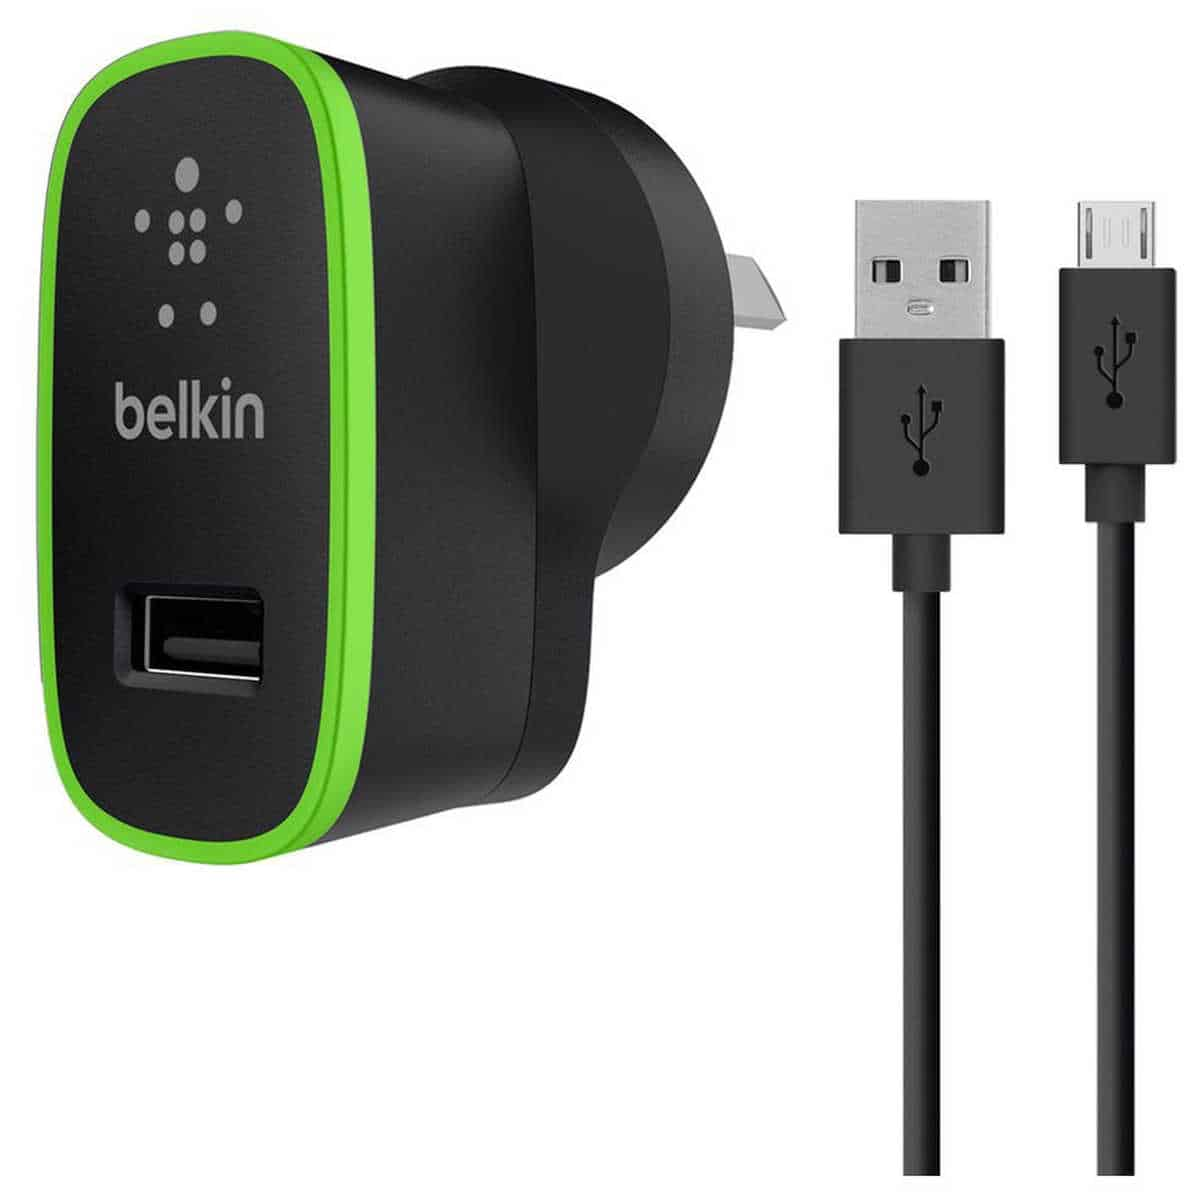 Mobile Phone How It Works further Belkin Micro Usb Charger as well 111755252792 in addition Cradlepoint COR IBR600 Router With Integrated 3G 4G as well Tpe Usb G5010 Chipset 50 Channel Gps Receiver Set For Pc And Laptops 47927. on gps tracking cell phones